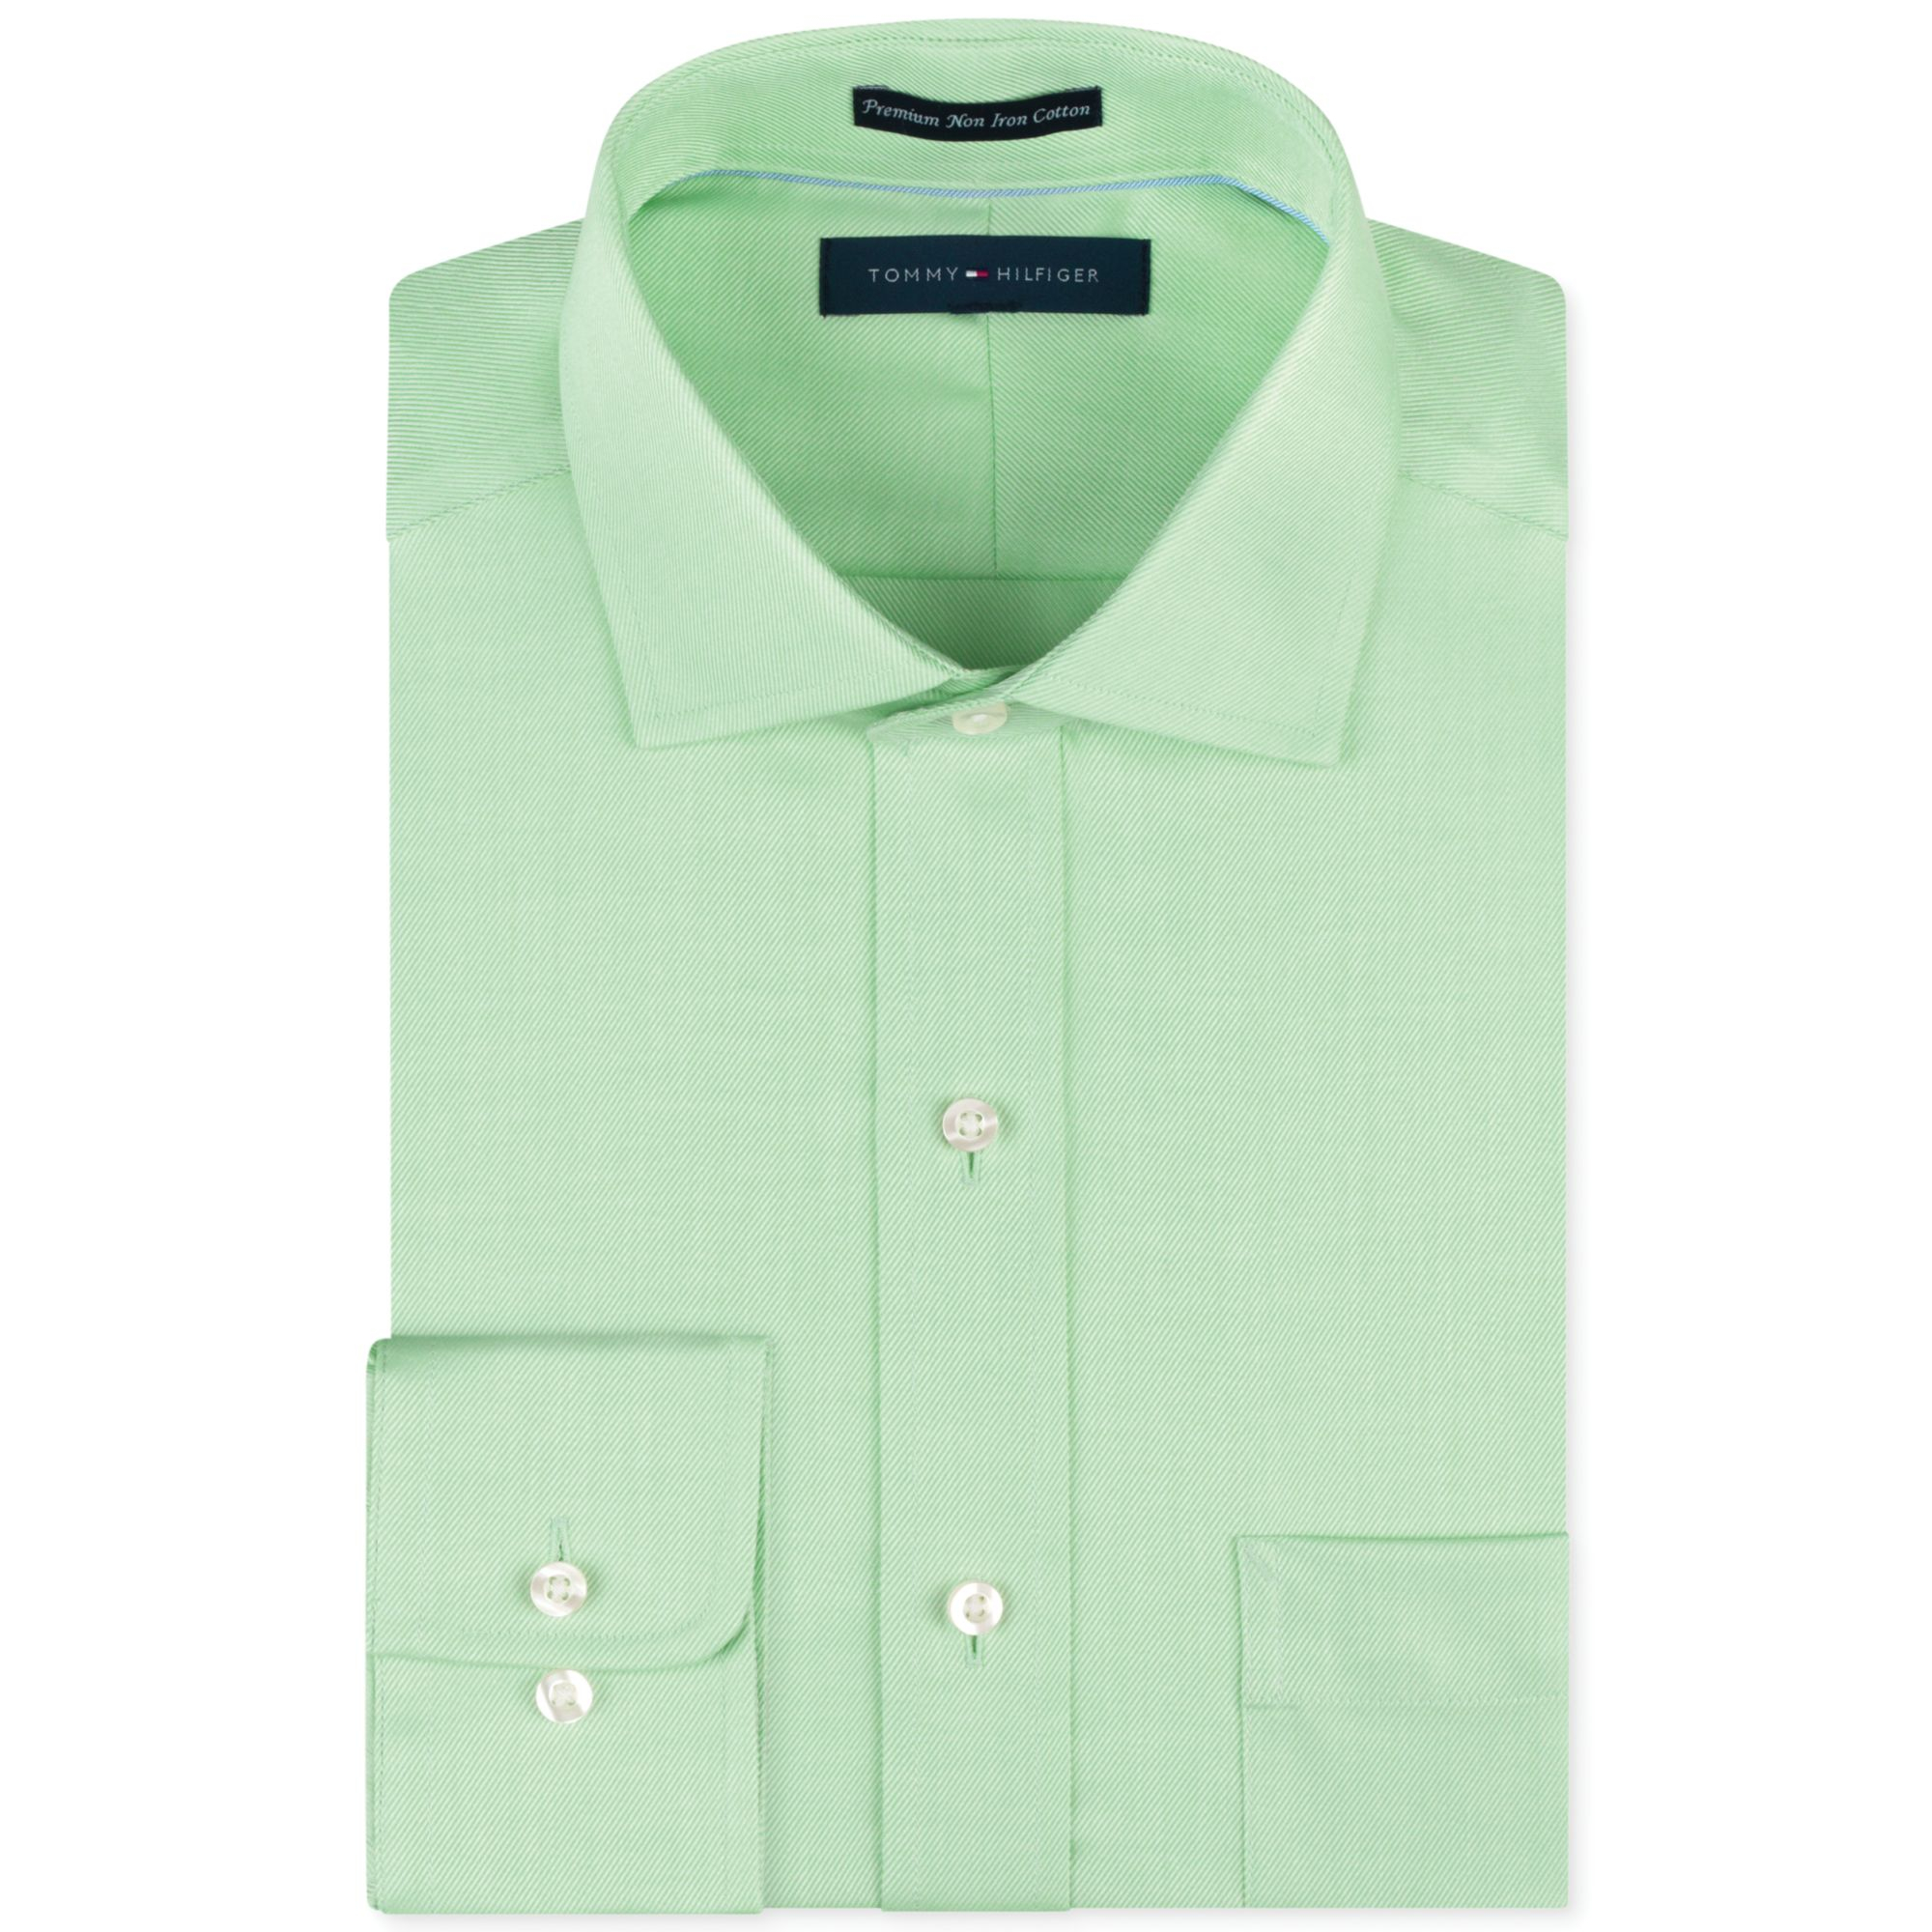 Lyst tommy hilfiger noniron light green solid dress for White non iron dress shirts